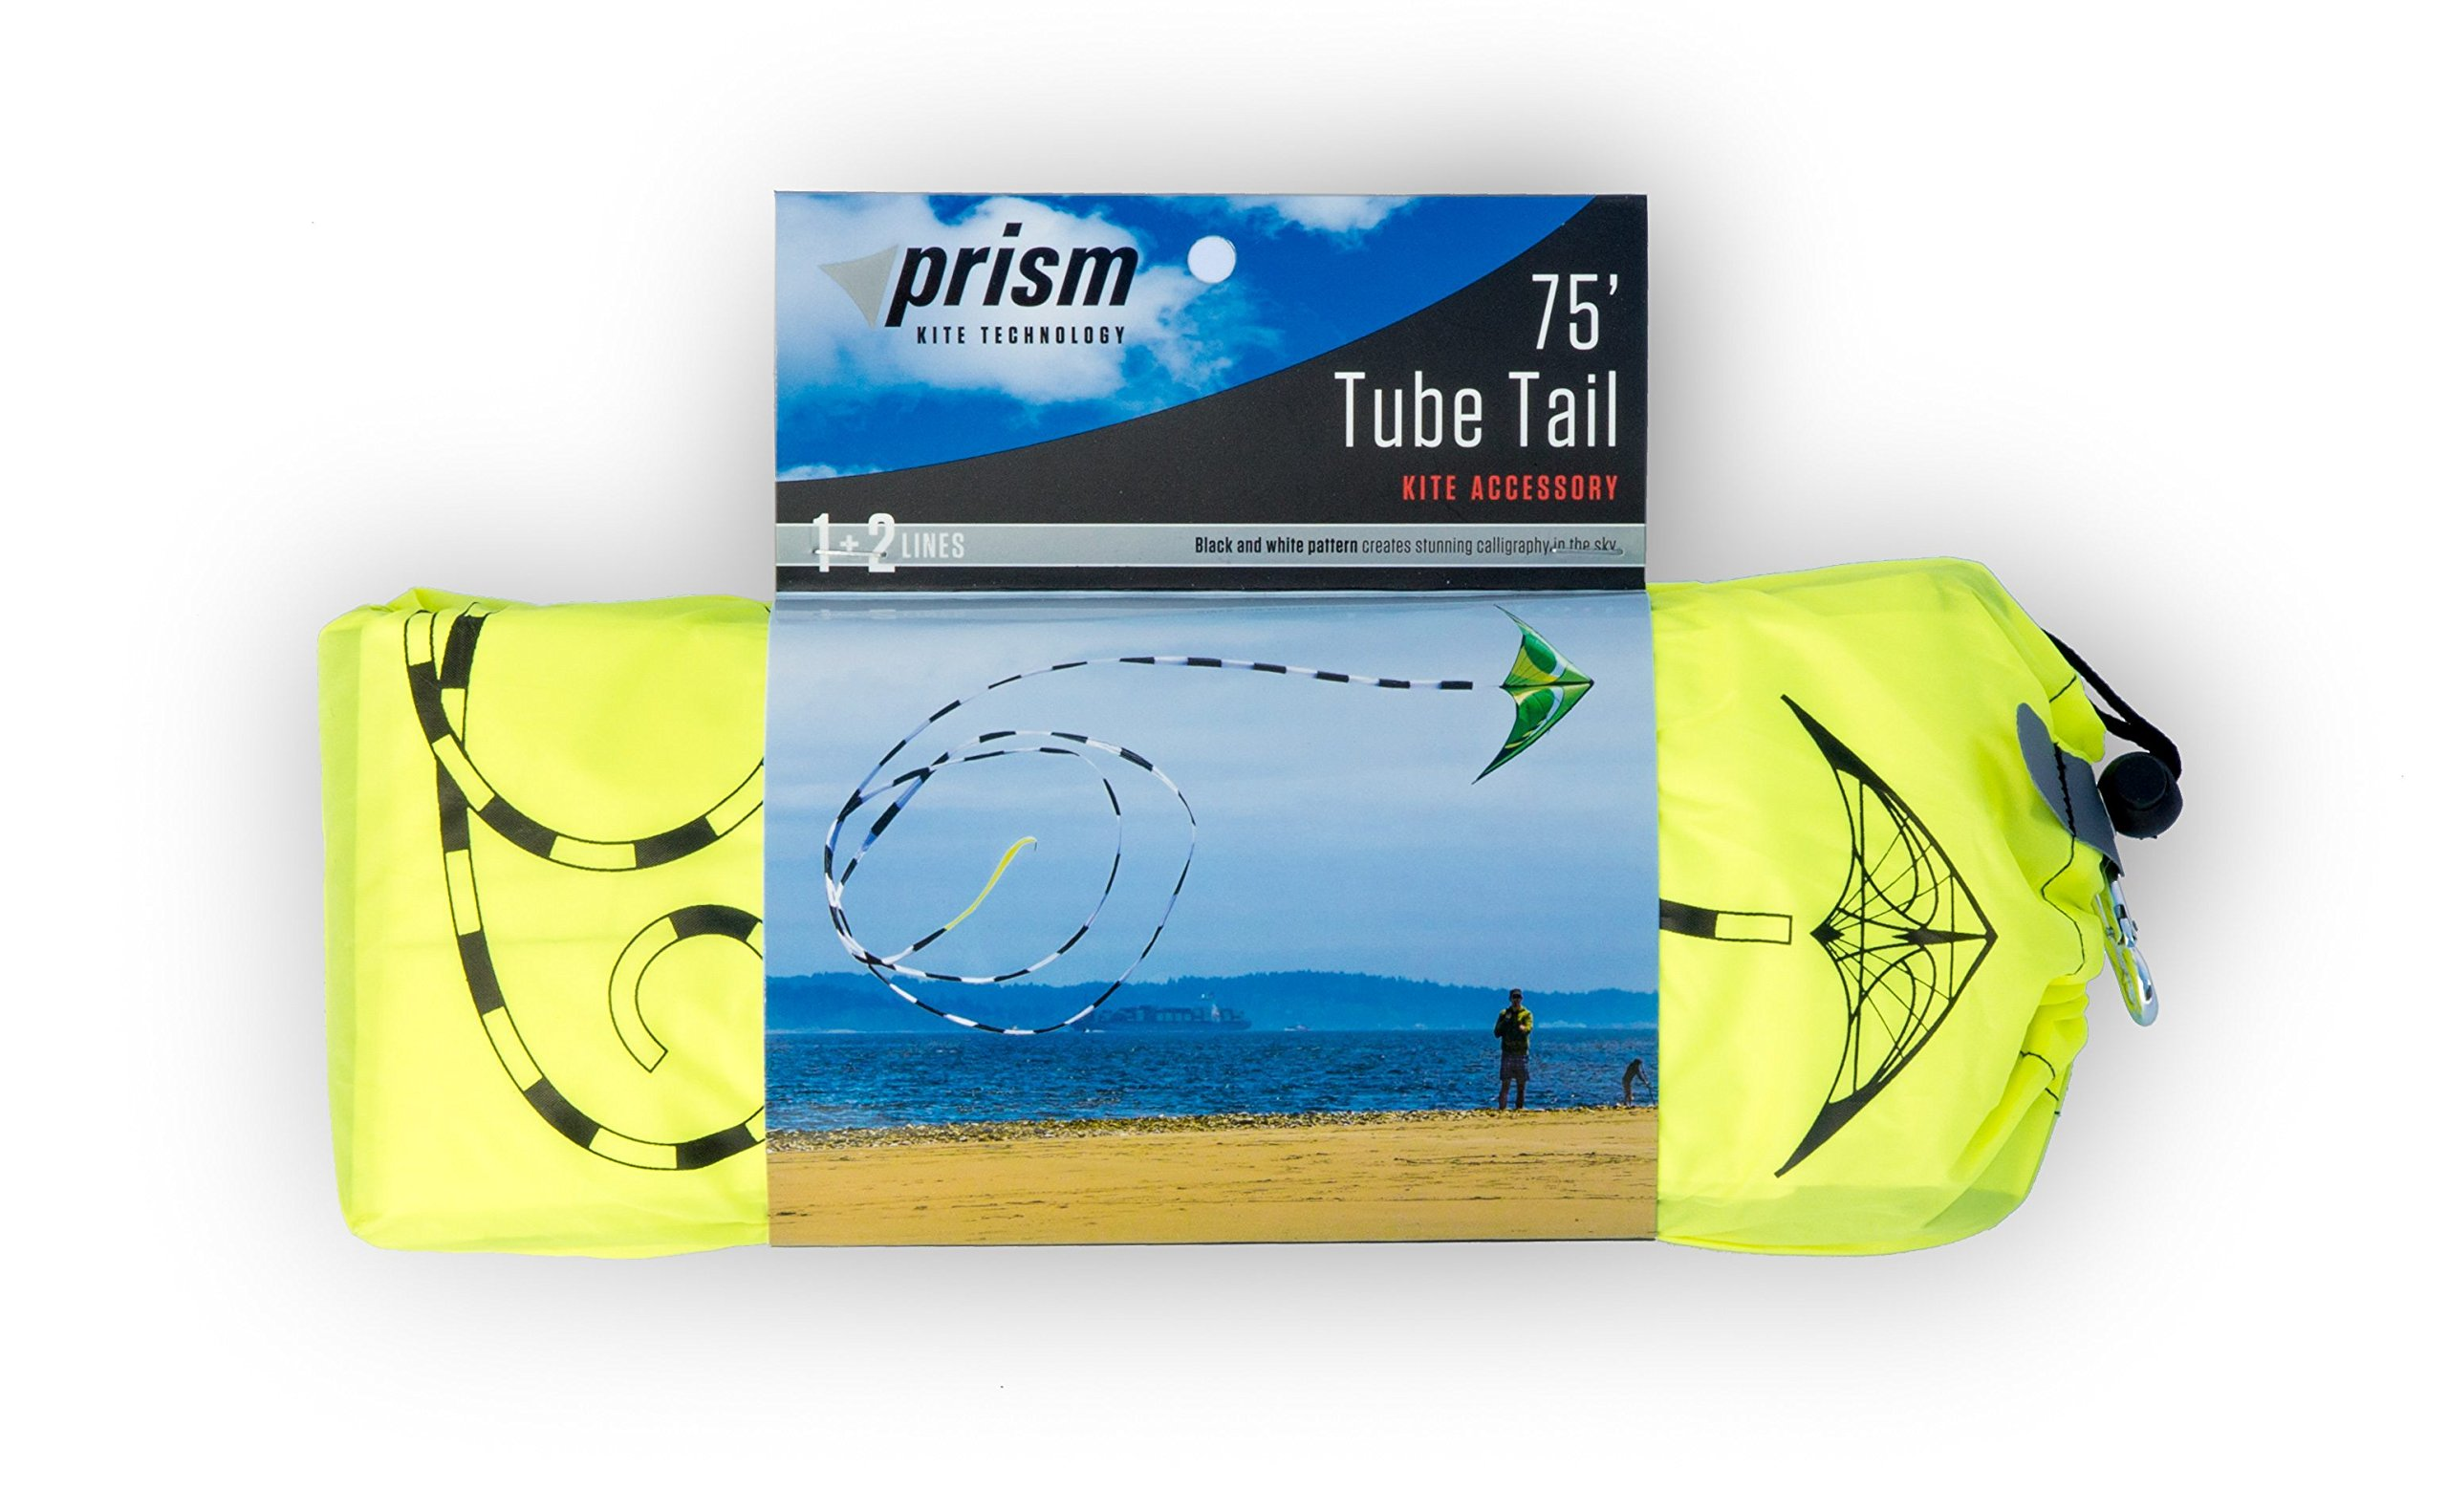 Prism Hypnotist Stunt Kite Mega Tube Tail Strap Bundle (4 Items) + Prism 75ft Tube Tail + Peter Lynn HD Padded Strap Handles Pair + WindBone Kiteboarding Lifestyle Stickers + Key Fob (Citrus) by Prism, Peter Lynn, WindBone (Image #3)